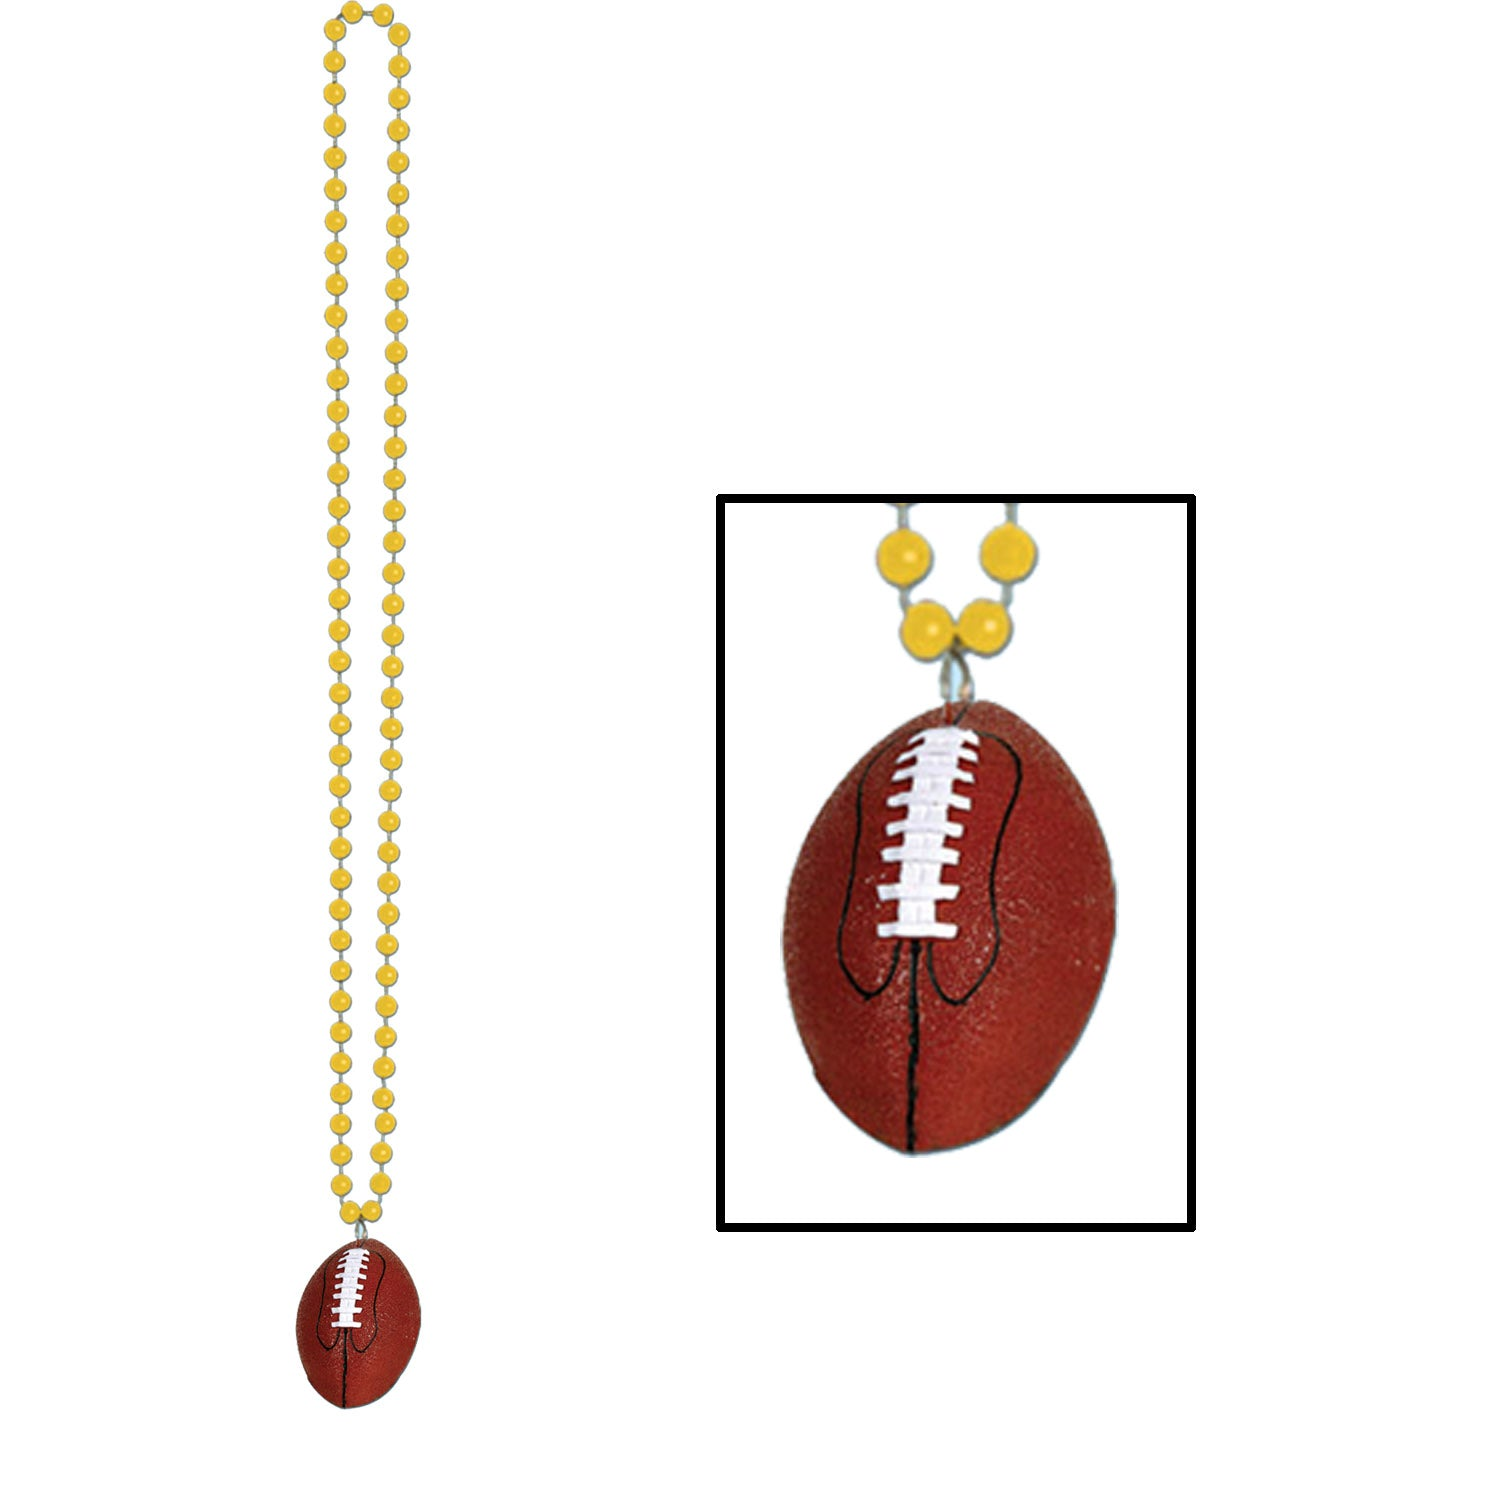 jewelery tigers football enameled woman pendant zokee university girl necklace products auburn au accessories